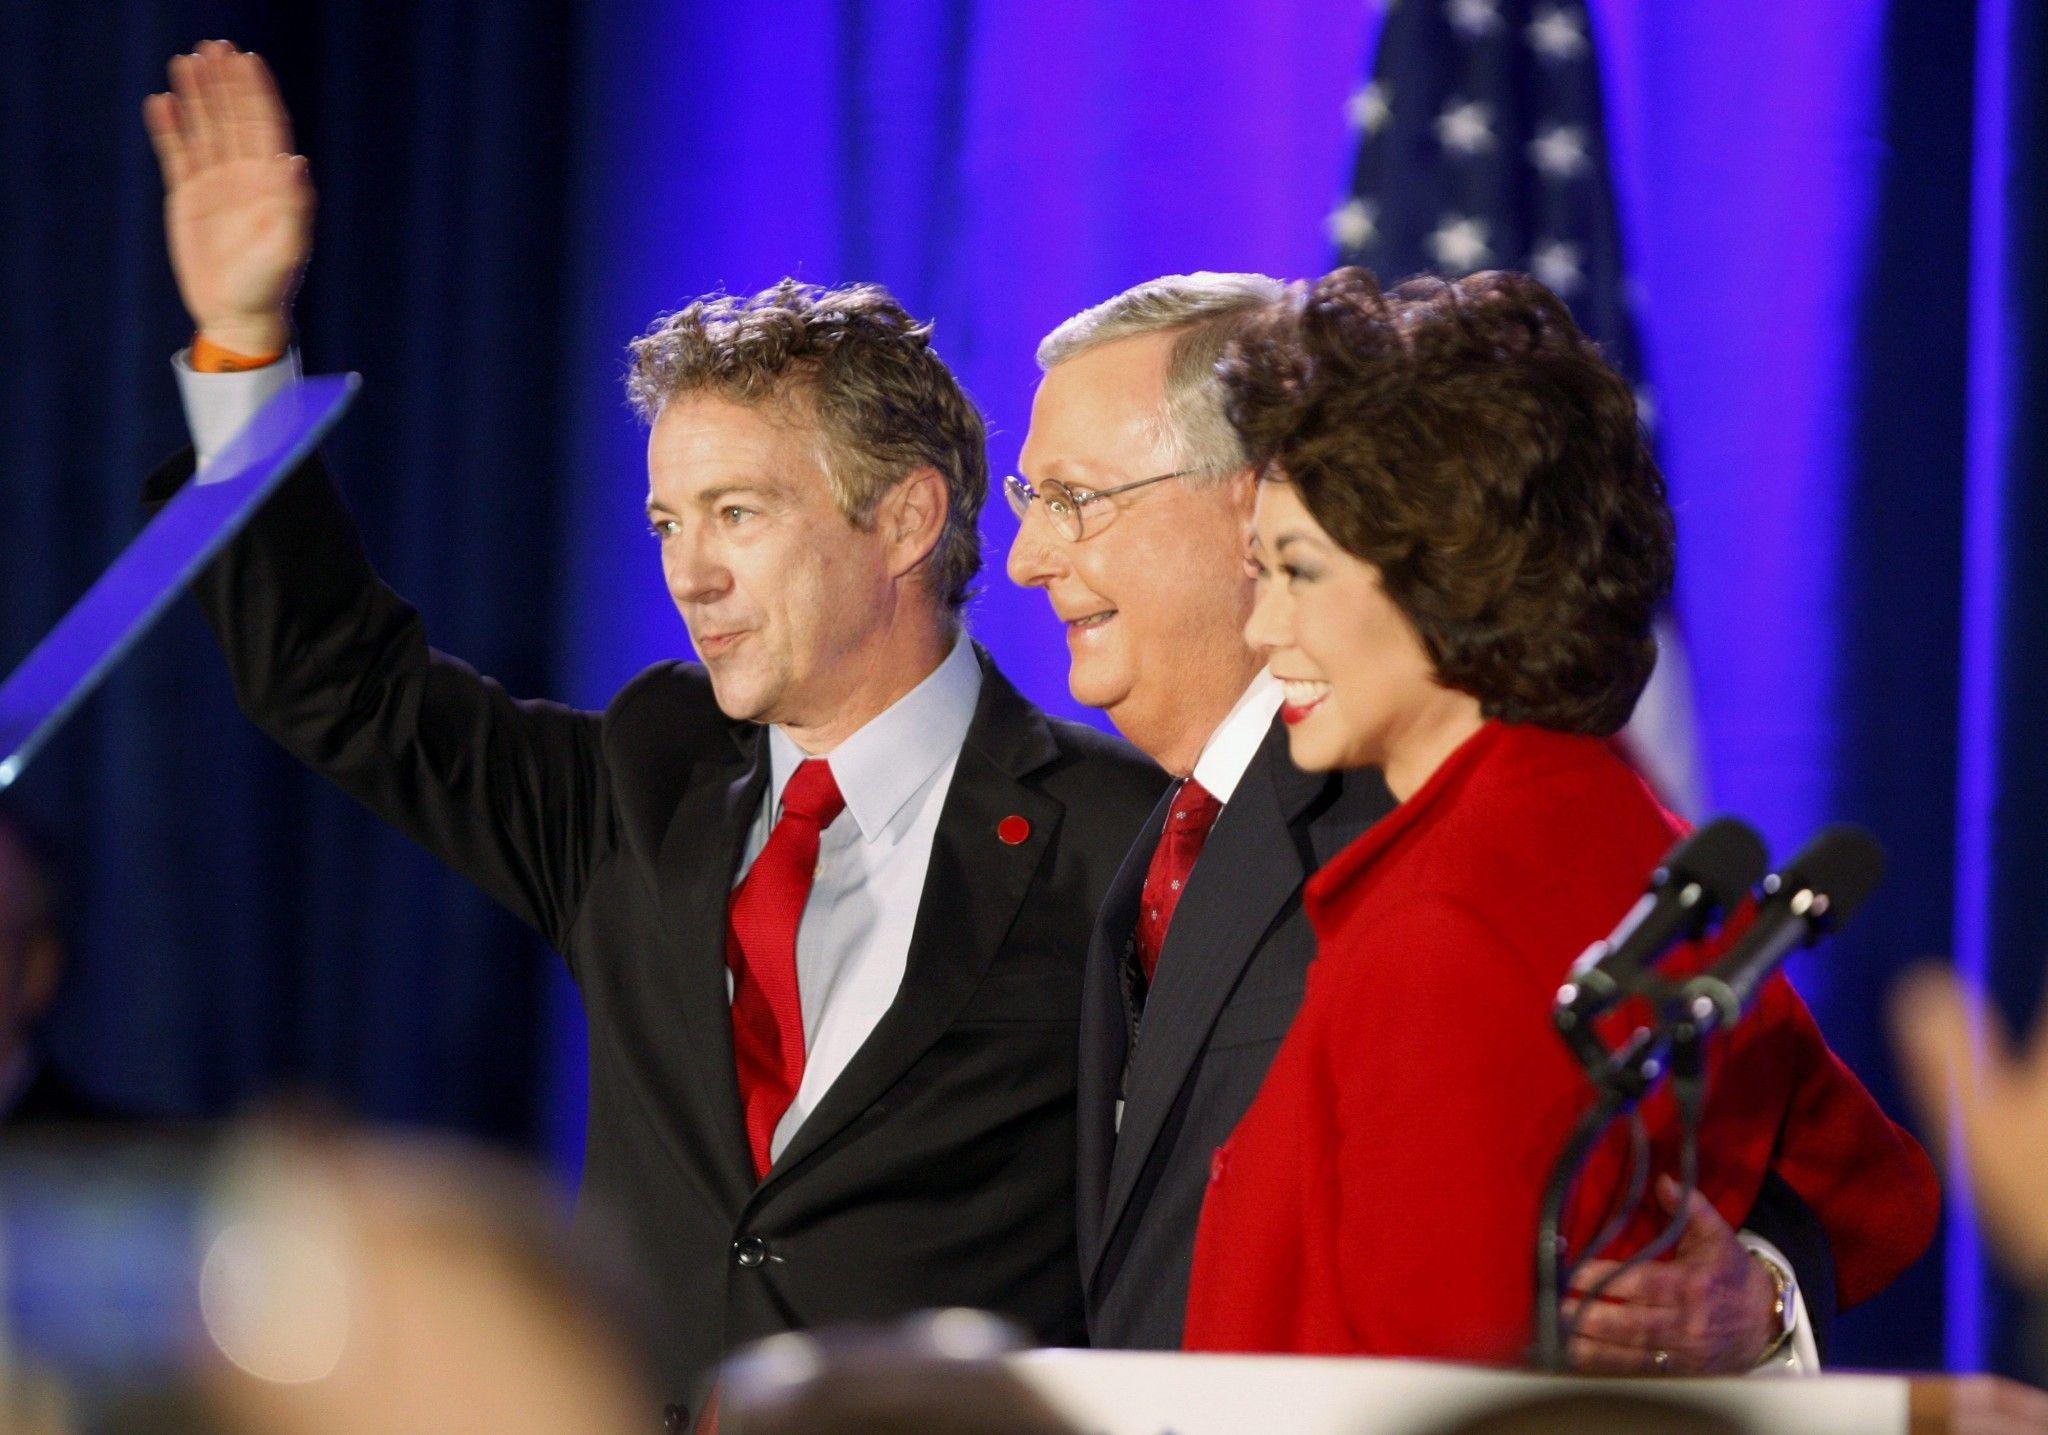 The GOP victories represented a widespread unease about the nation's direction and the electorate's disenchantment with President Obama.